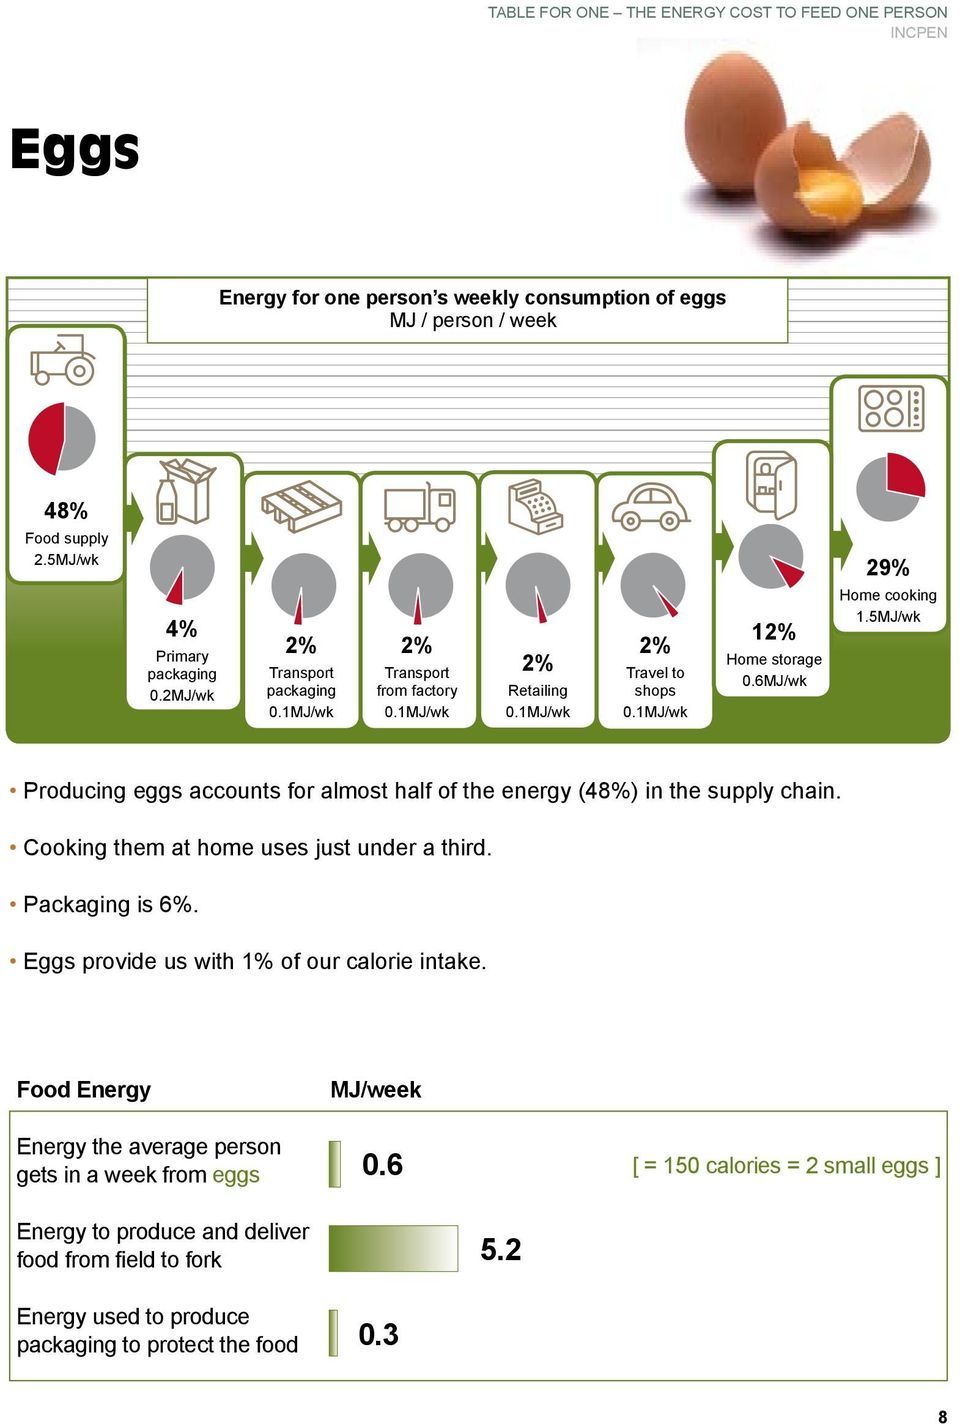 Cooking them at home uses just under a third. Packaging is 6%. Eggs provide us with 1% of our calorie intake.